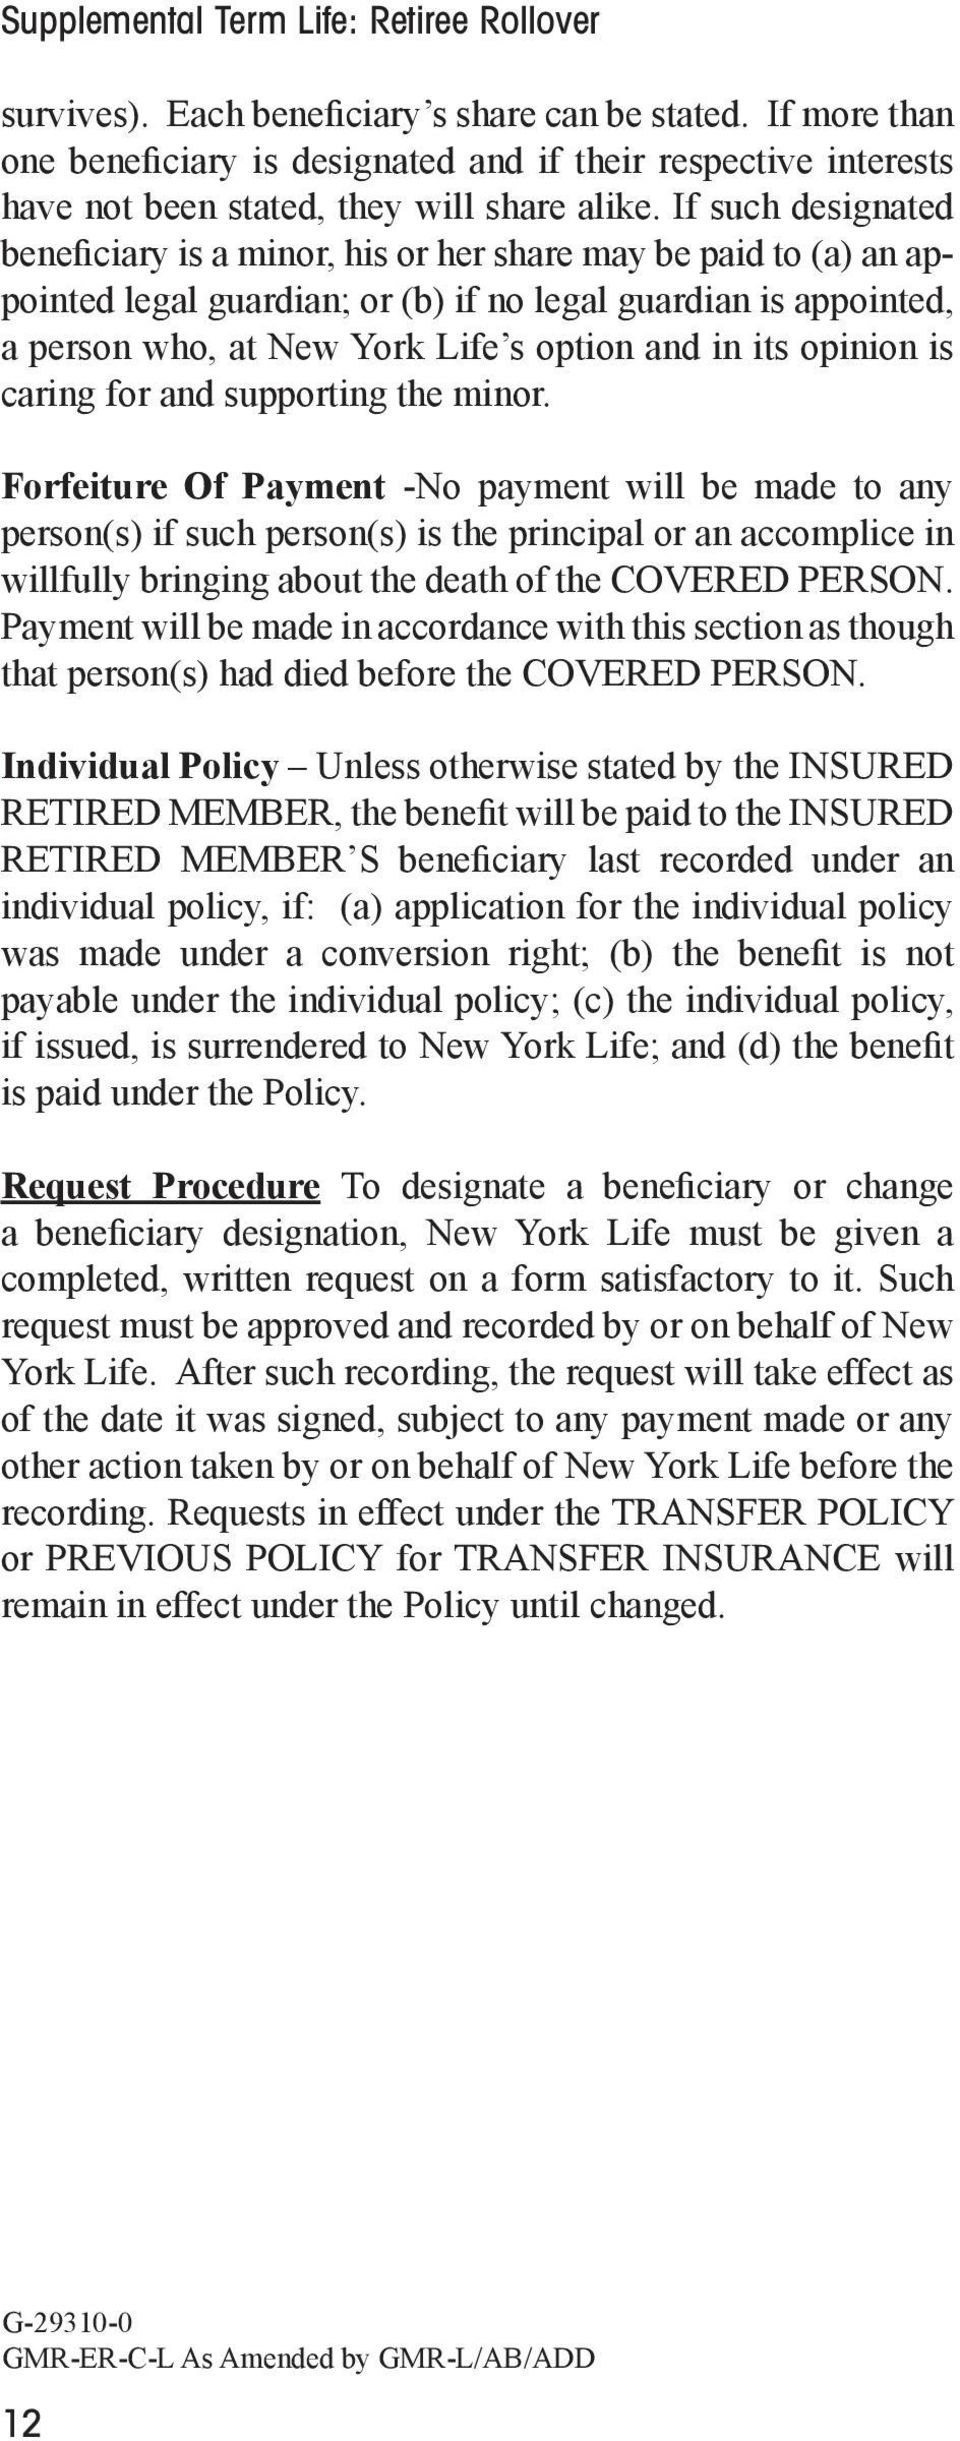 If such designated beneficiary is a minor, his or her share may be paid to (a) an appointed legal guardian; or (b) if no legal guardian is appointed, a person who, at New York Life s option and in